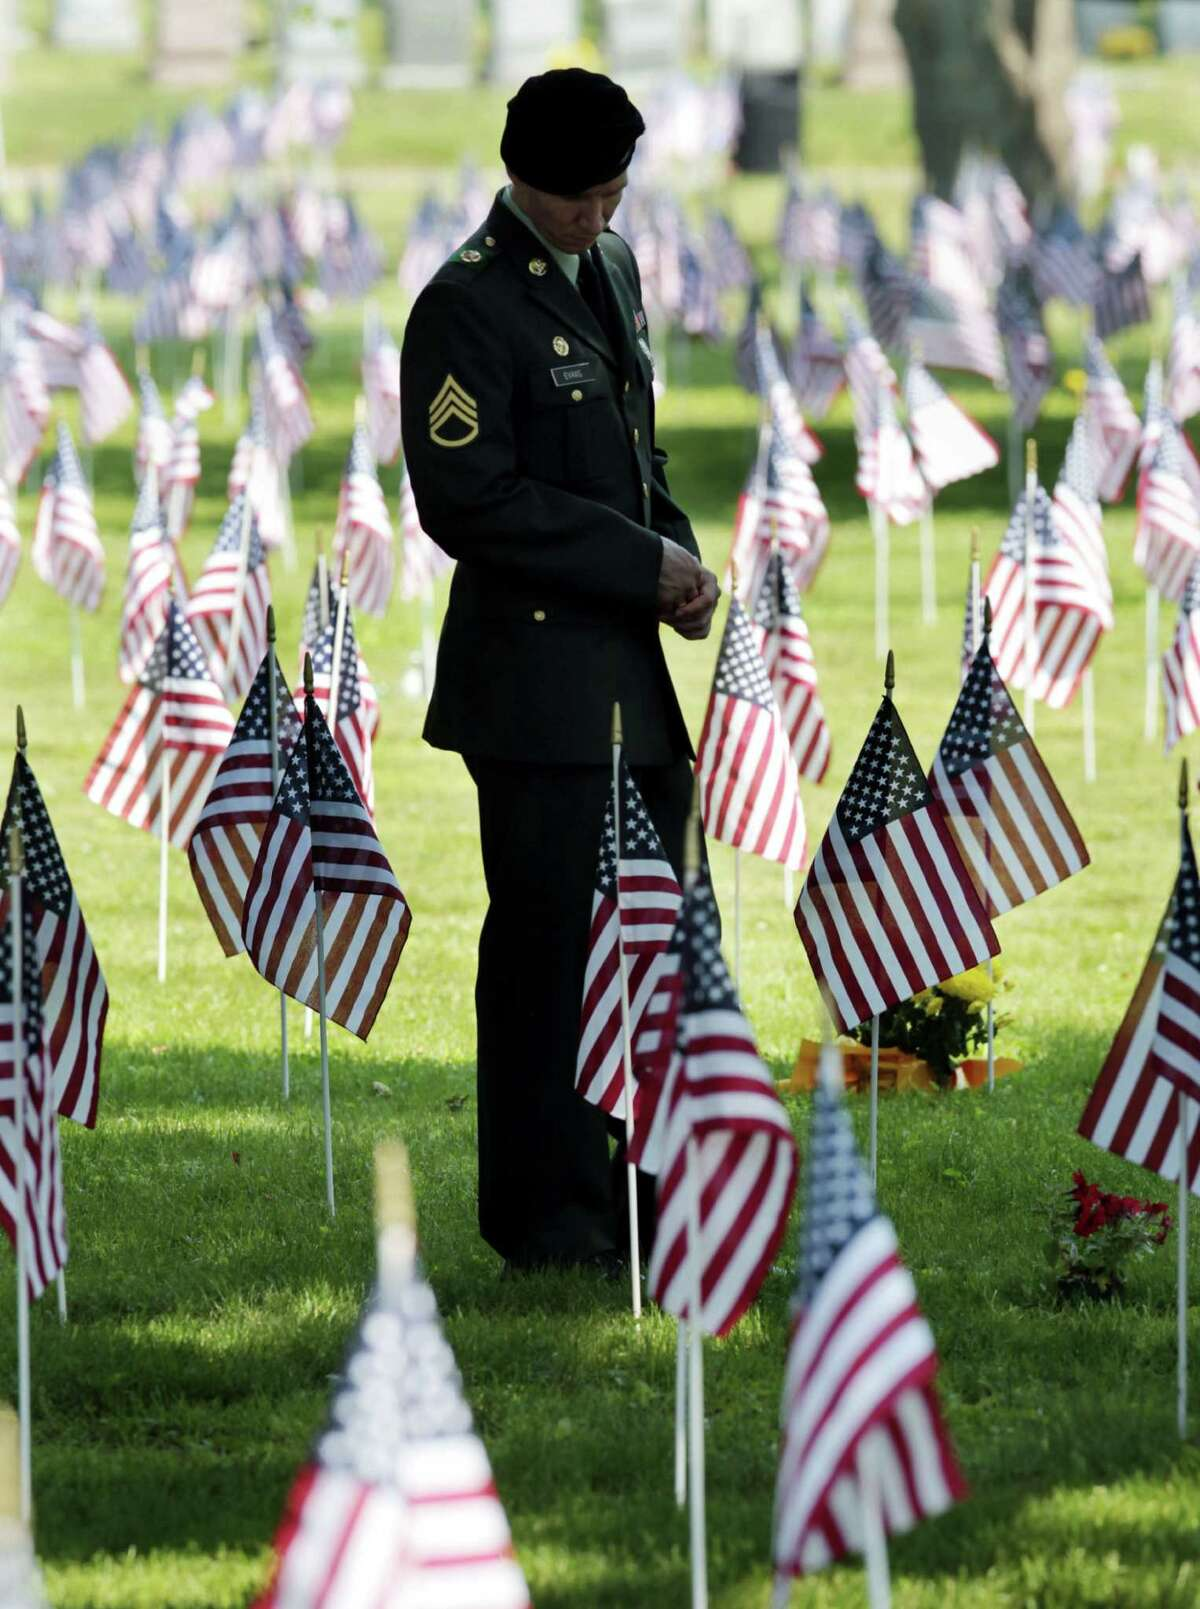 A soldier walks in a national cemetery on Memorial Day in 2010. Memorial Day honors those who have died while serving in this country's armed forces.